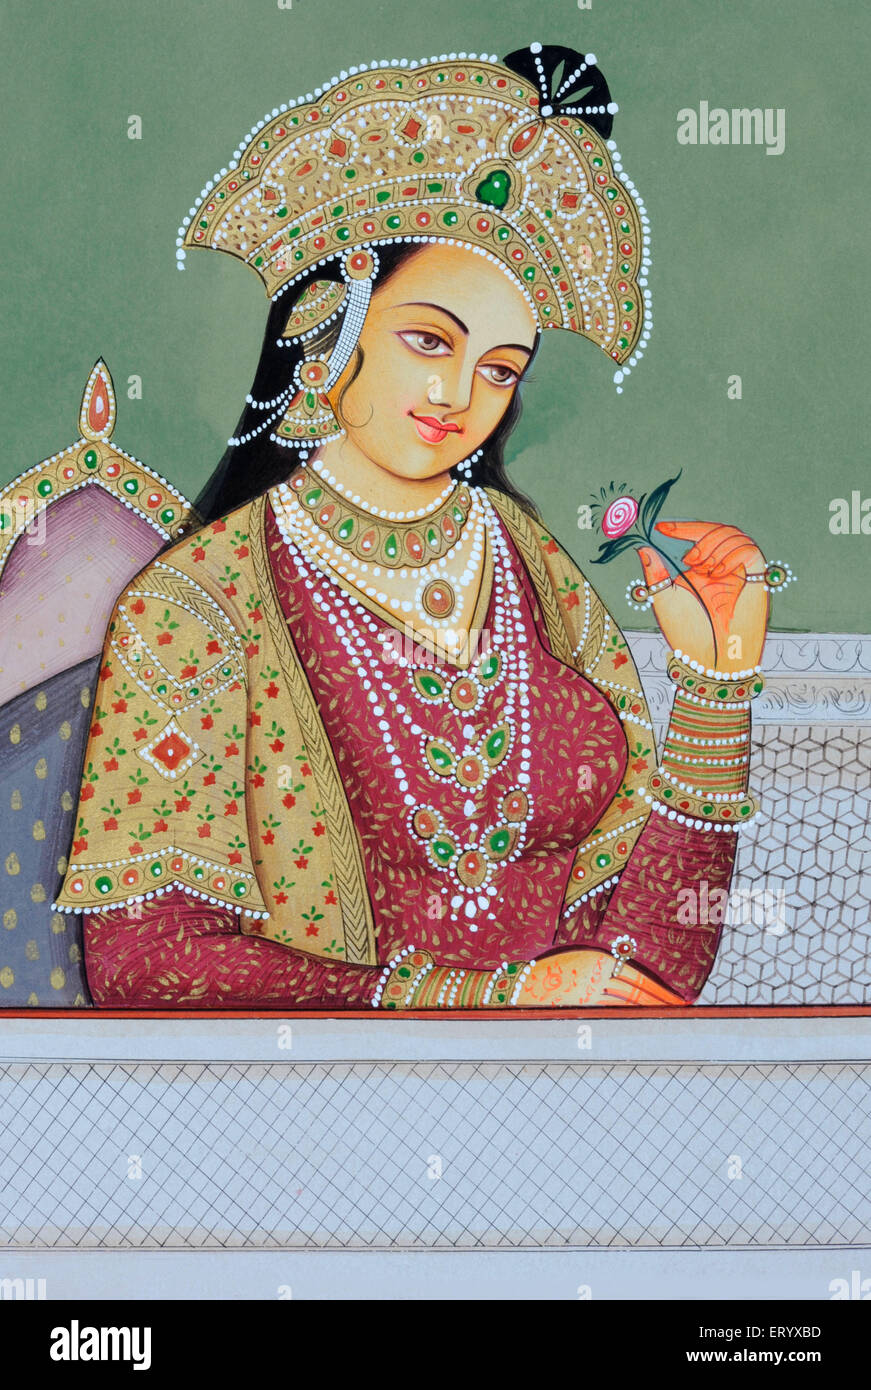 Miniature painting of Mughal Queen Mumtaz Mahal - Stock Image